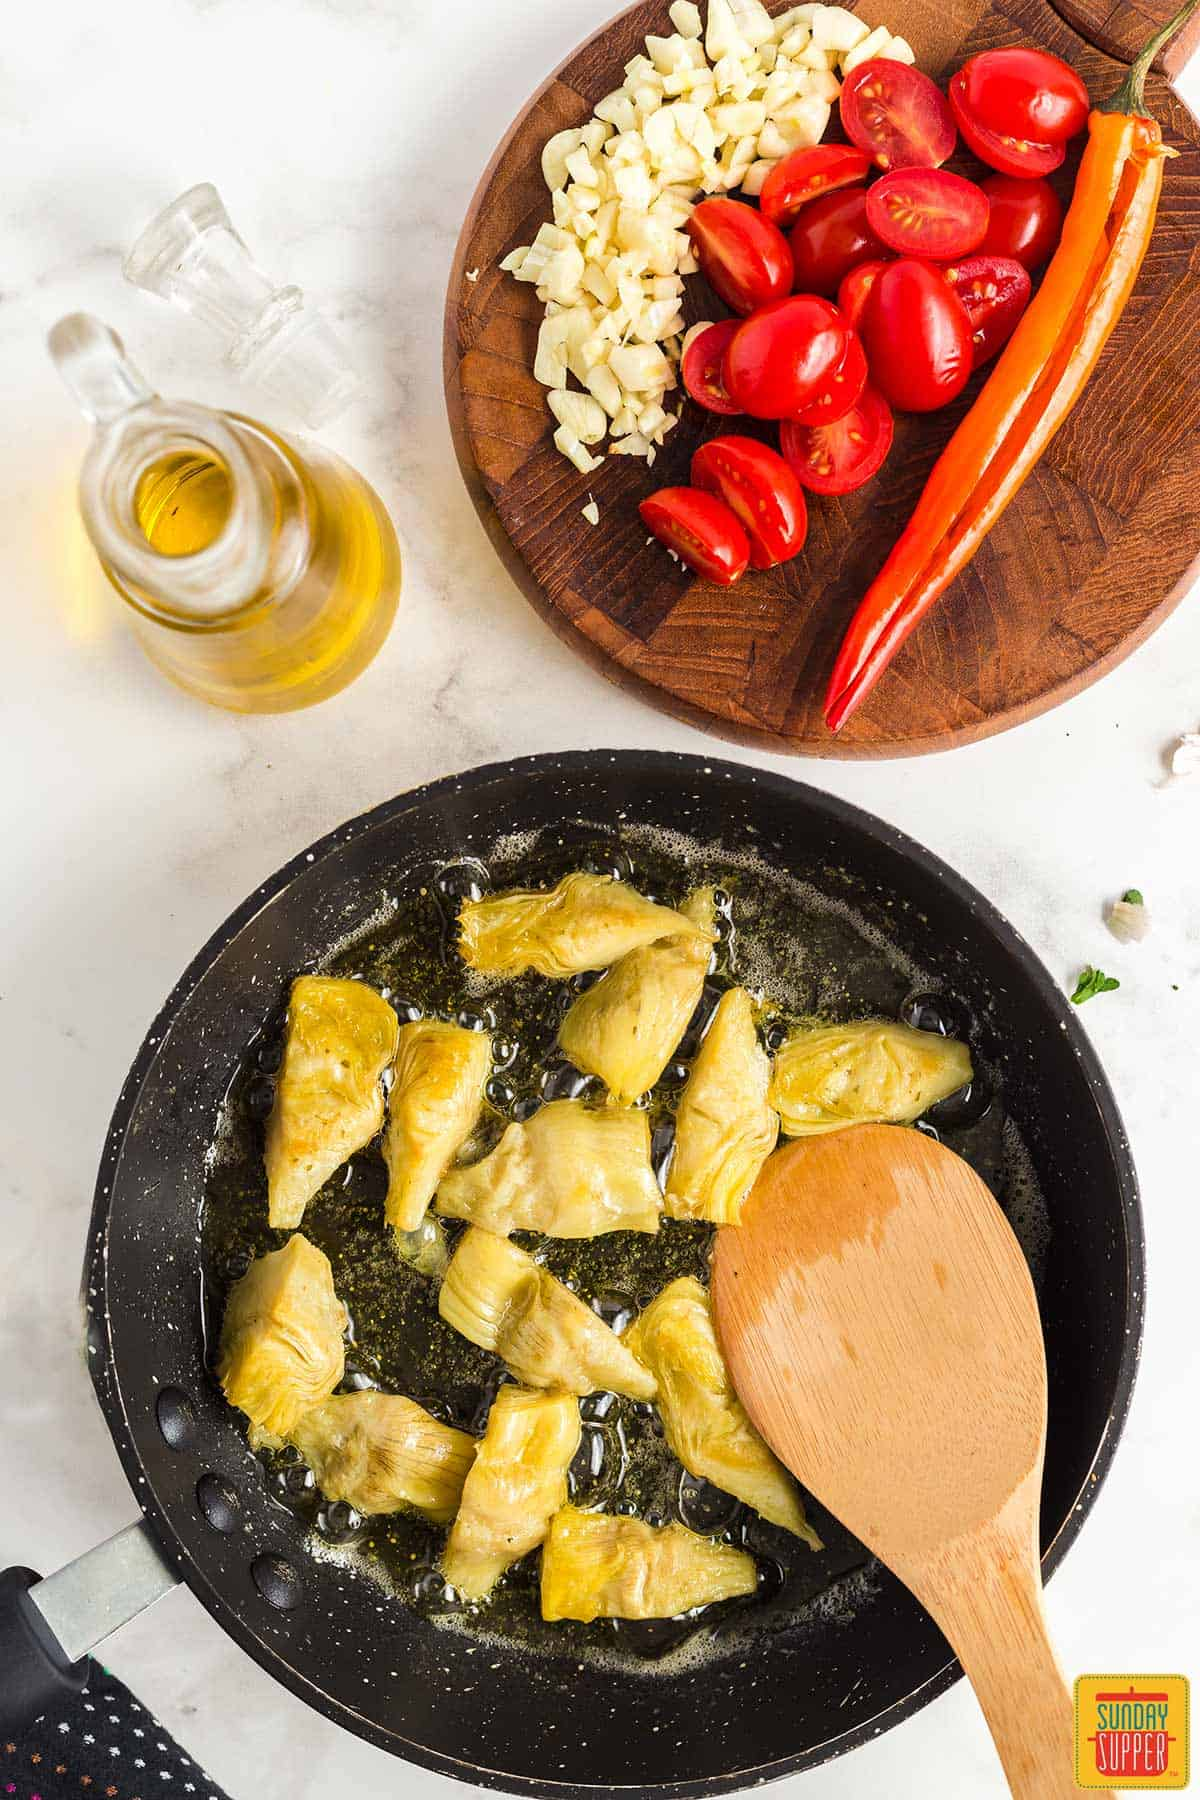 Cooking artichoke hearts in a skillet with olive oil